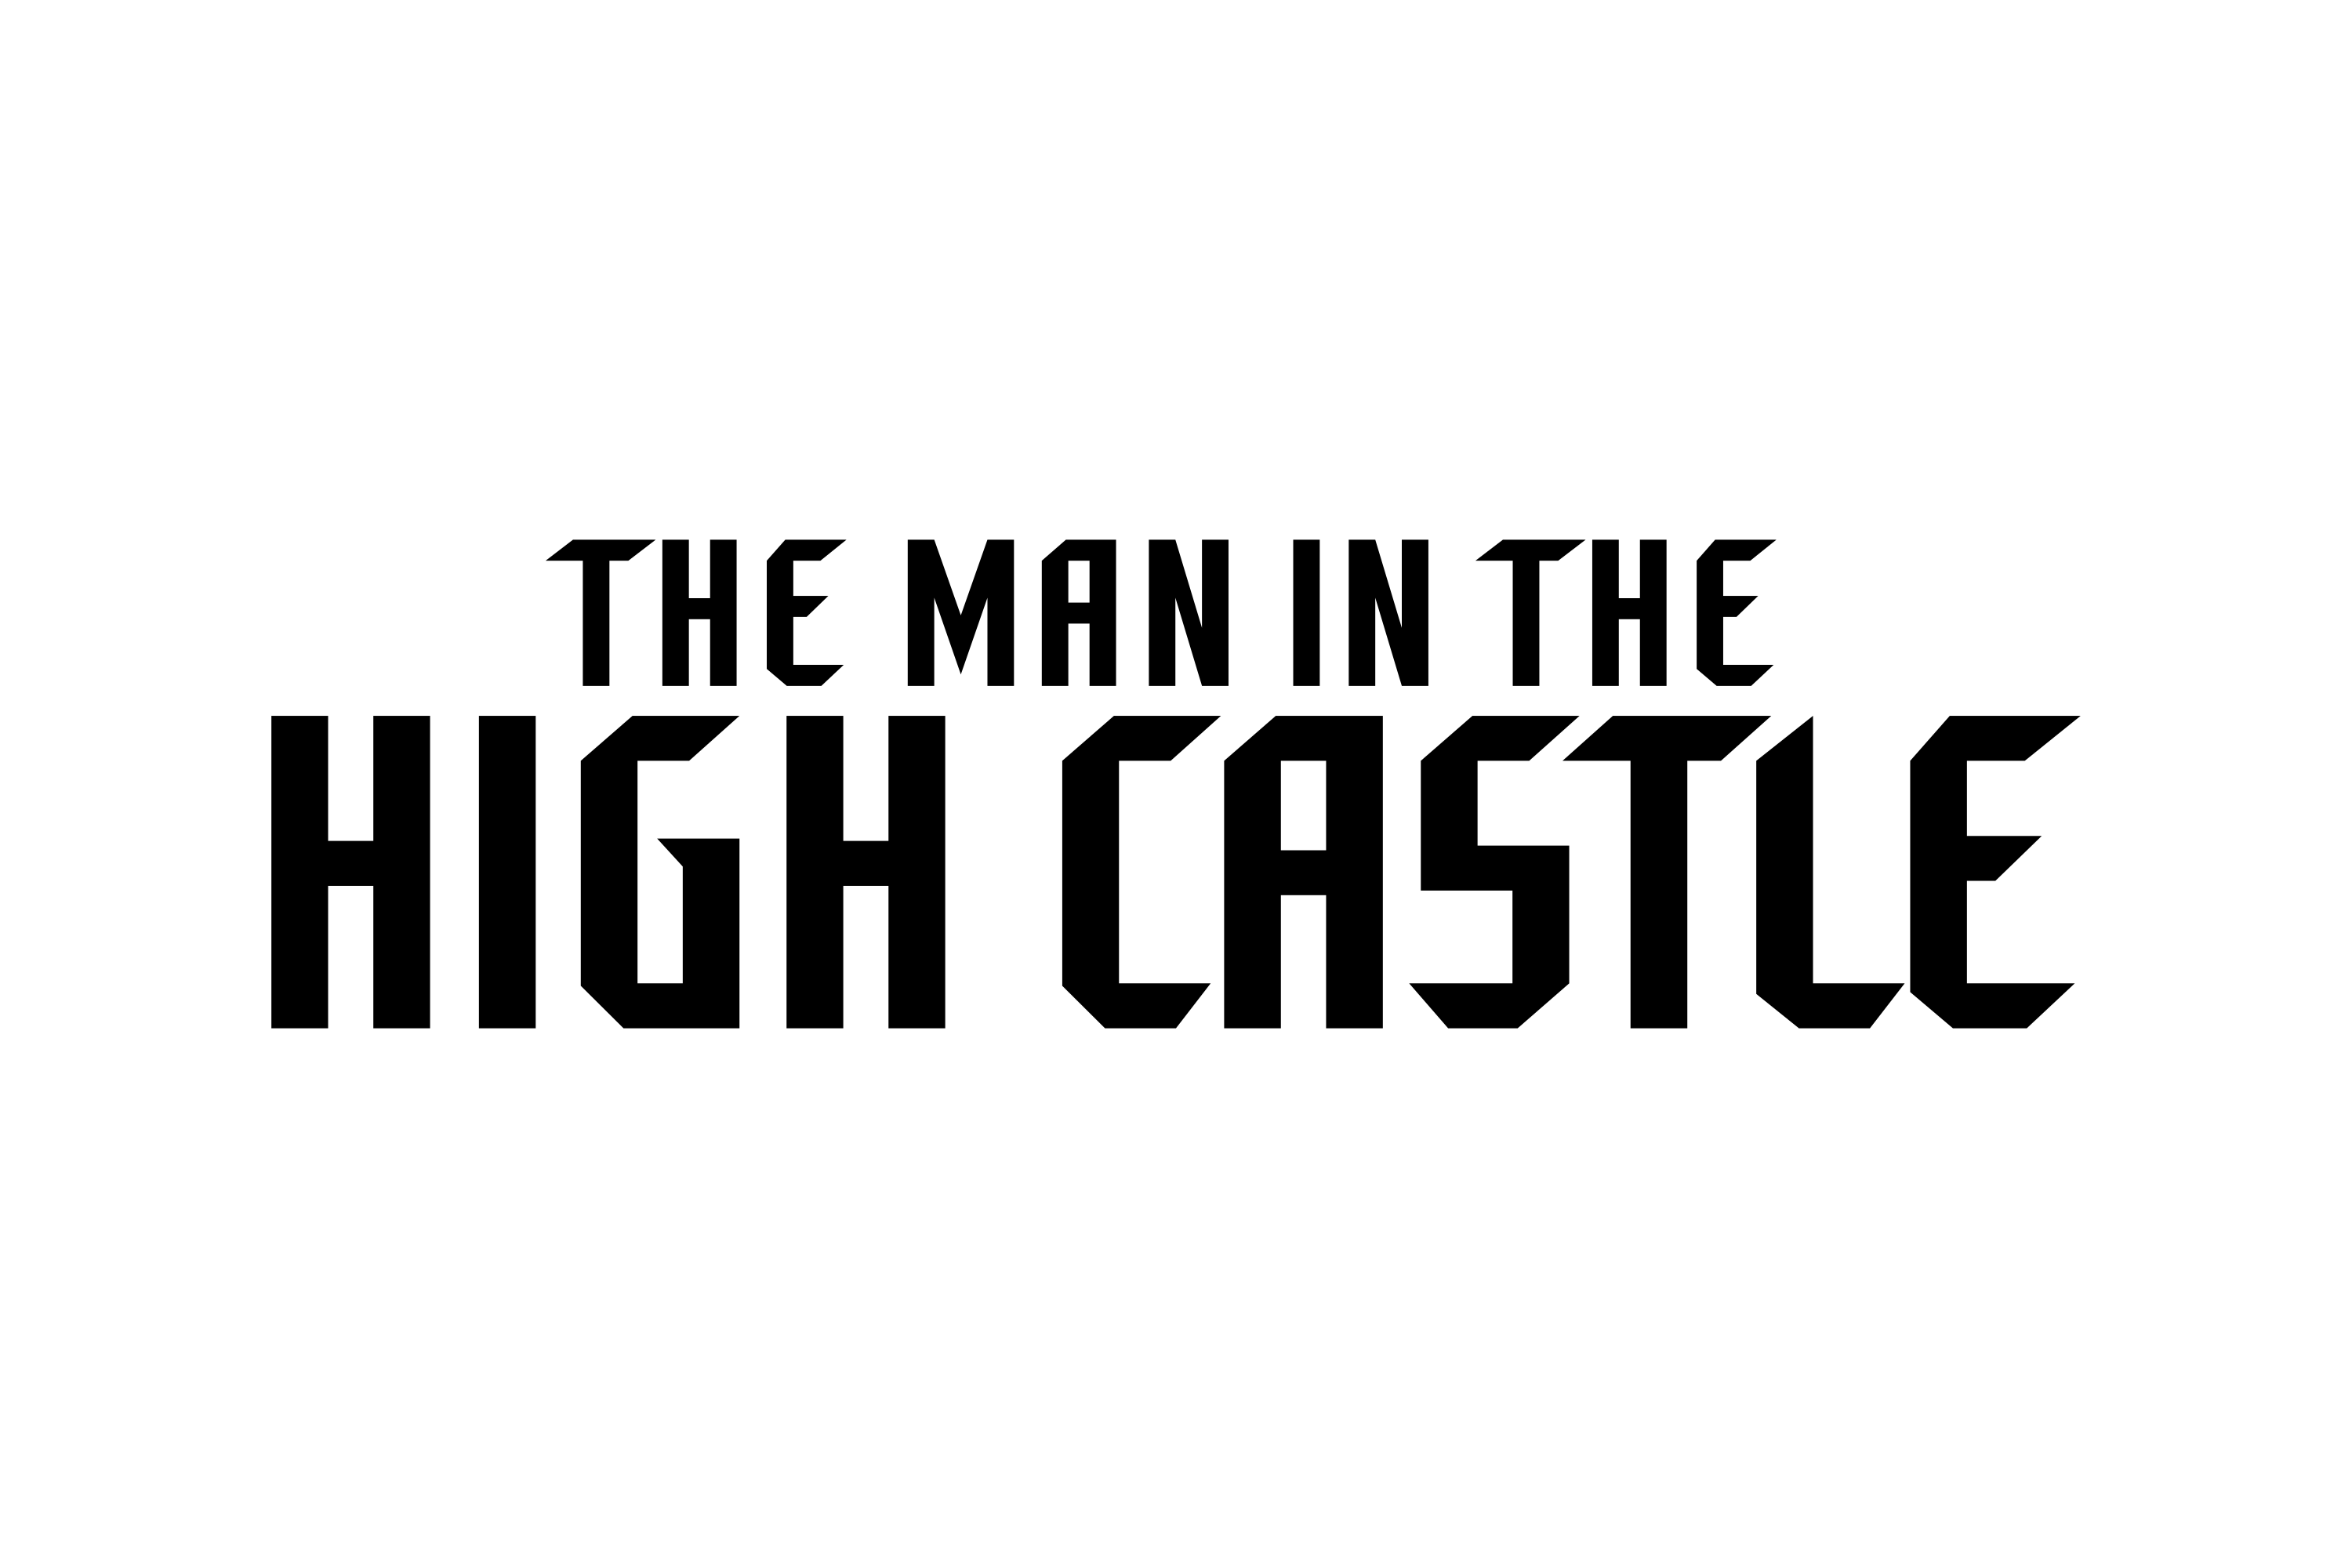 Download The Man In The High Castle Logo In Svg Vector Or Png File Format Logo Wine